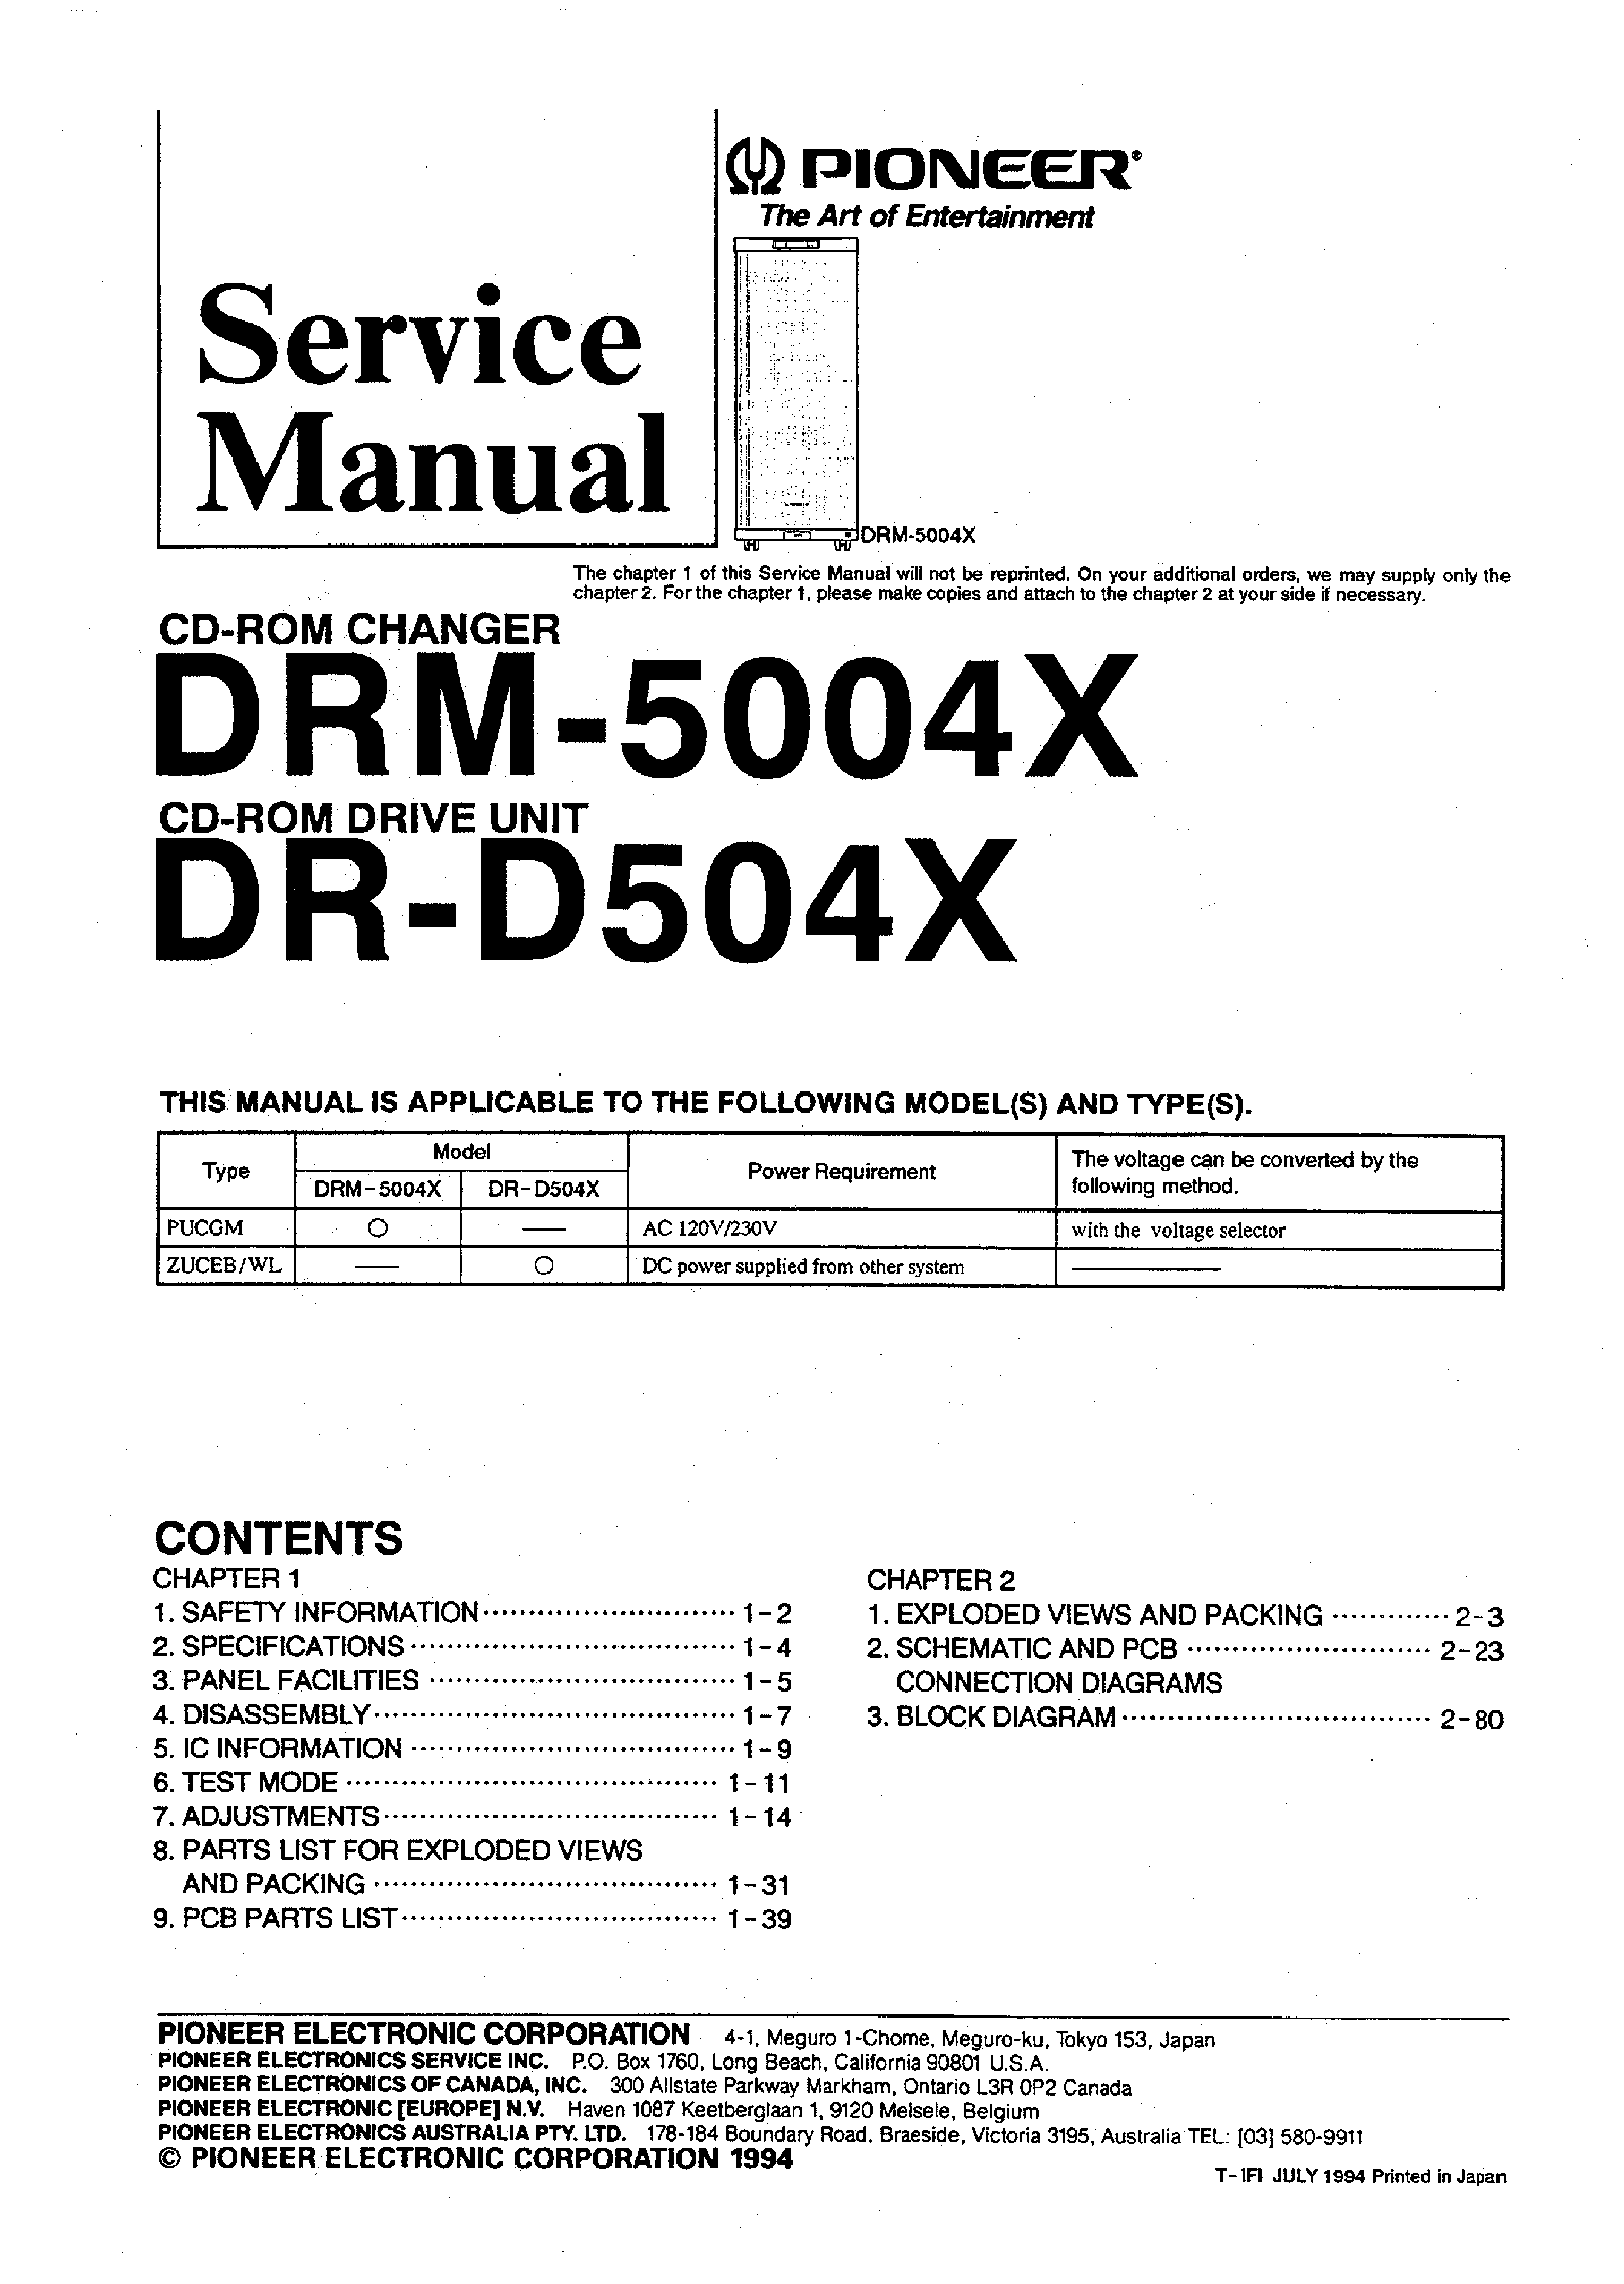 PIONEER DRM-5004X - Service Manual Immediate Download